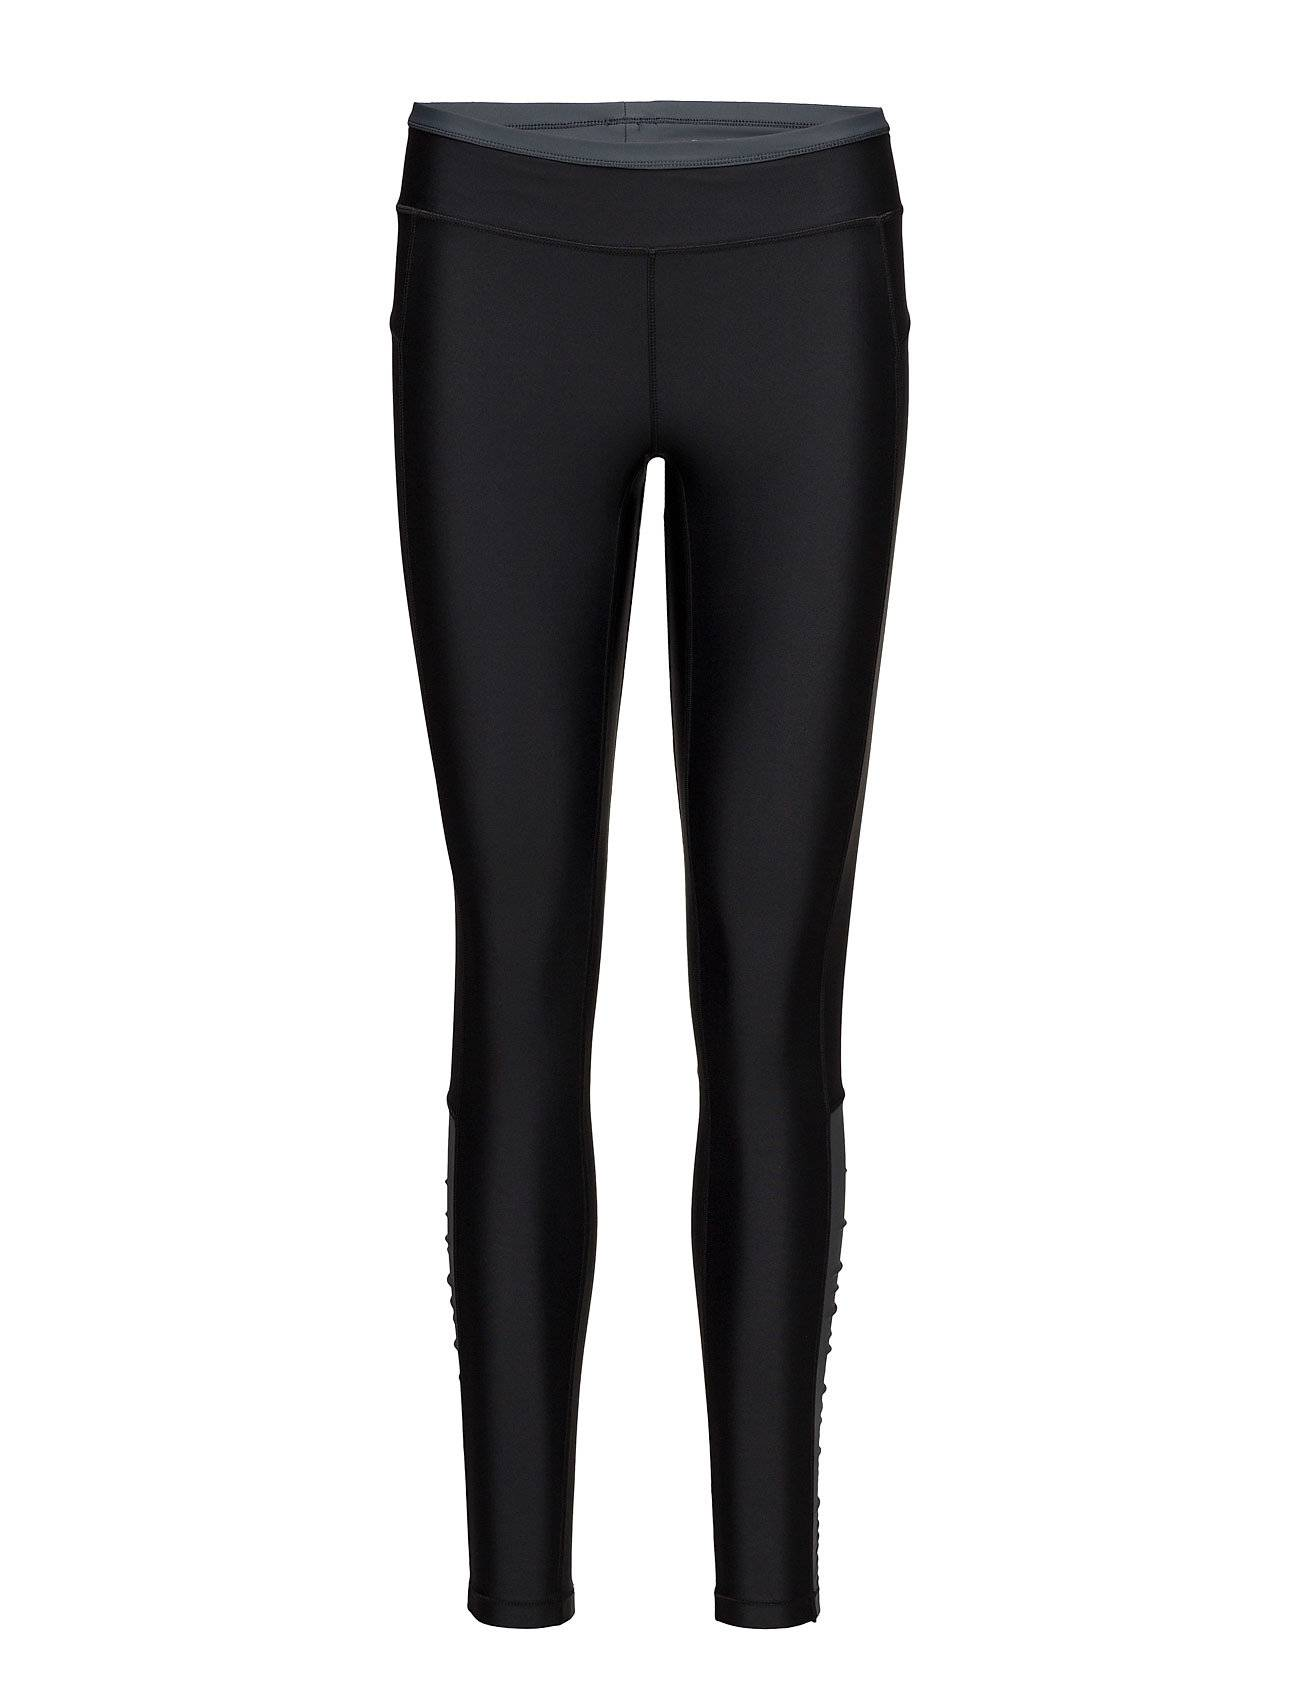 Casall Crease Tights